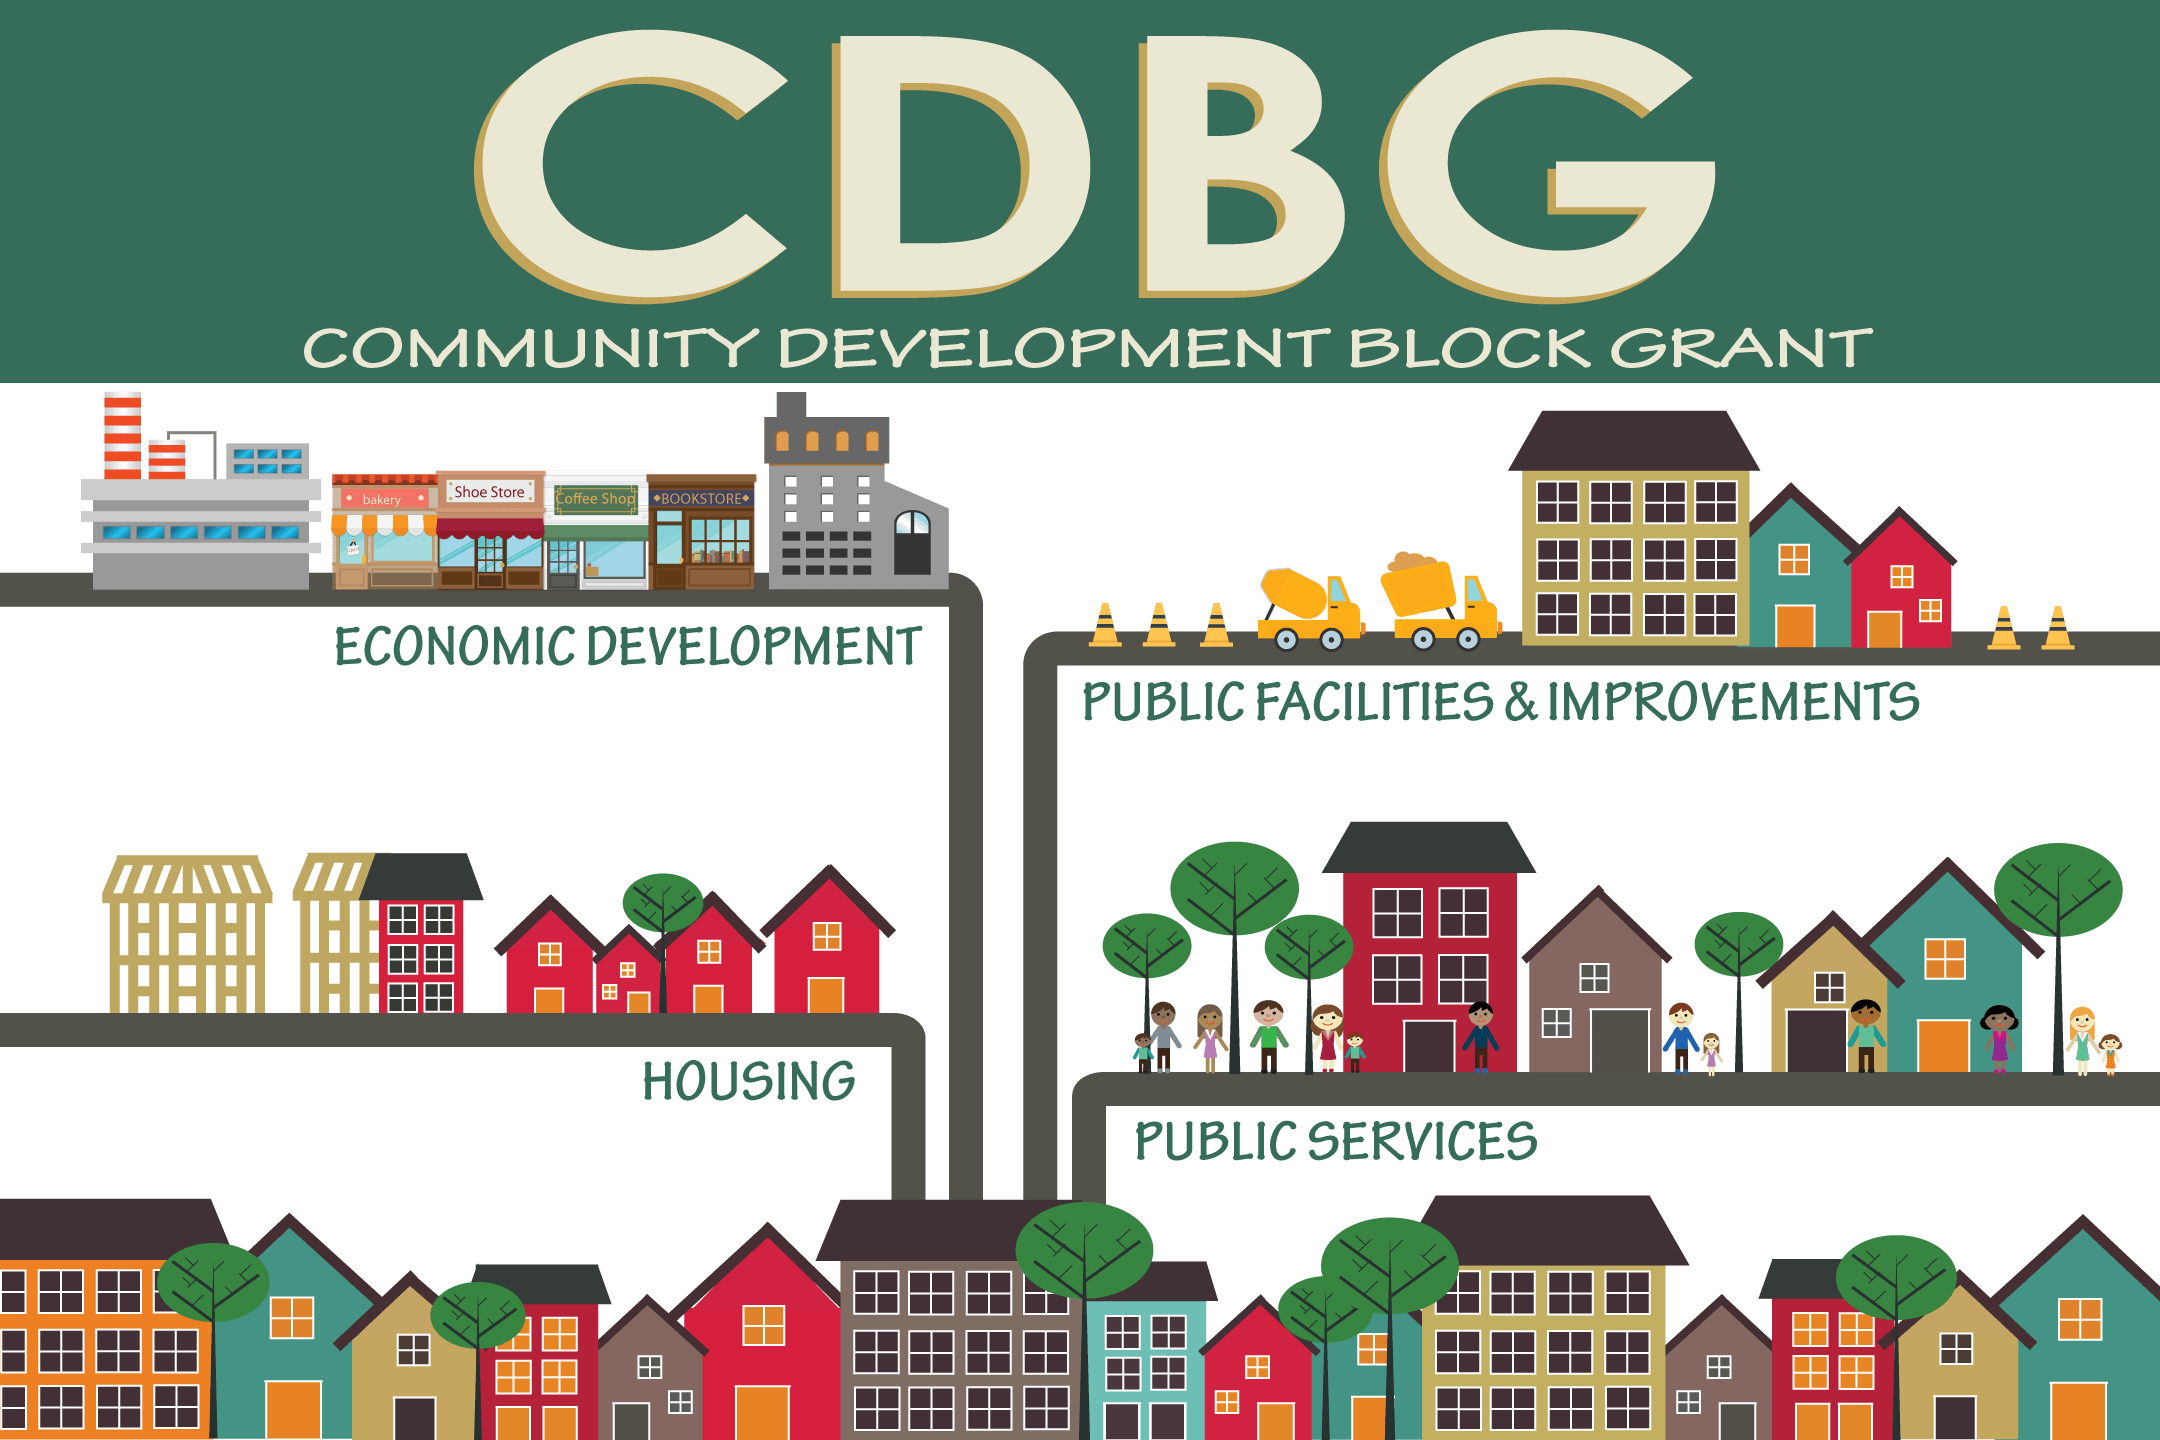 Canton Community Development Block Grant